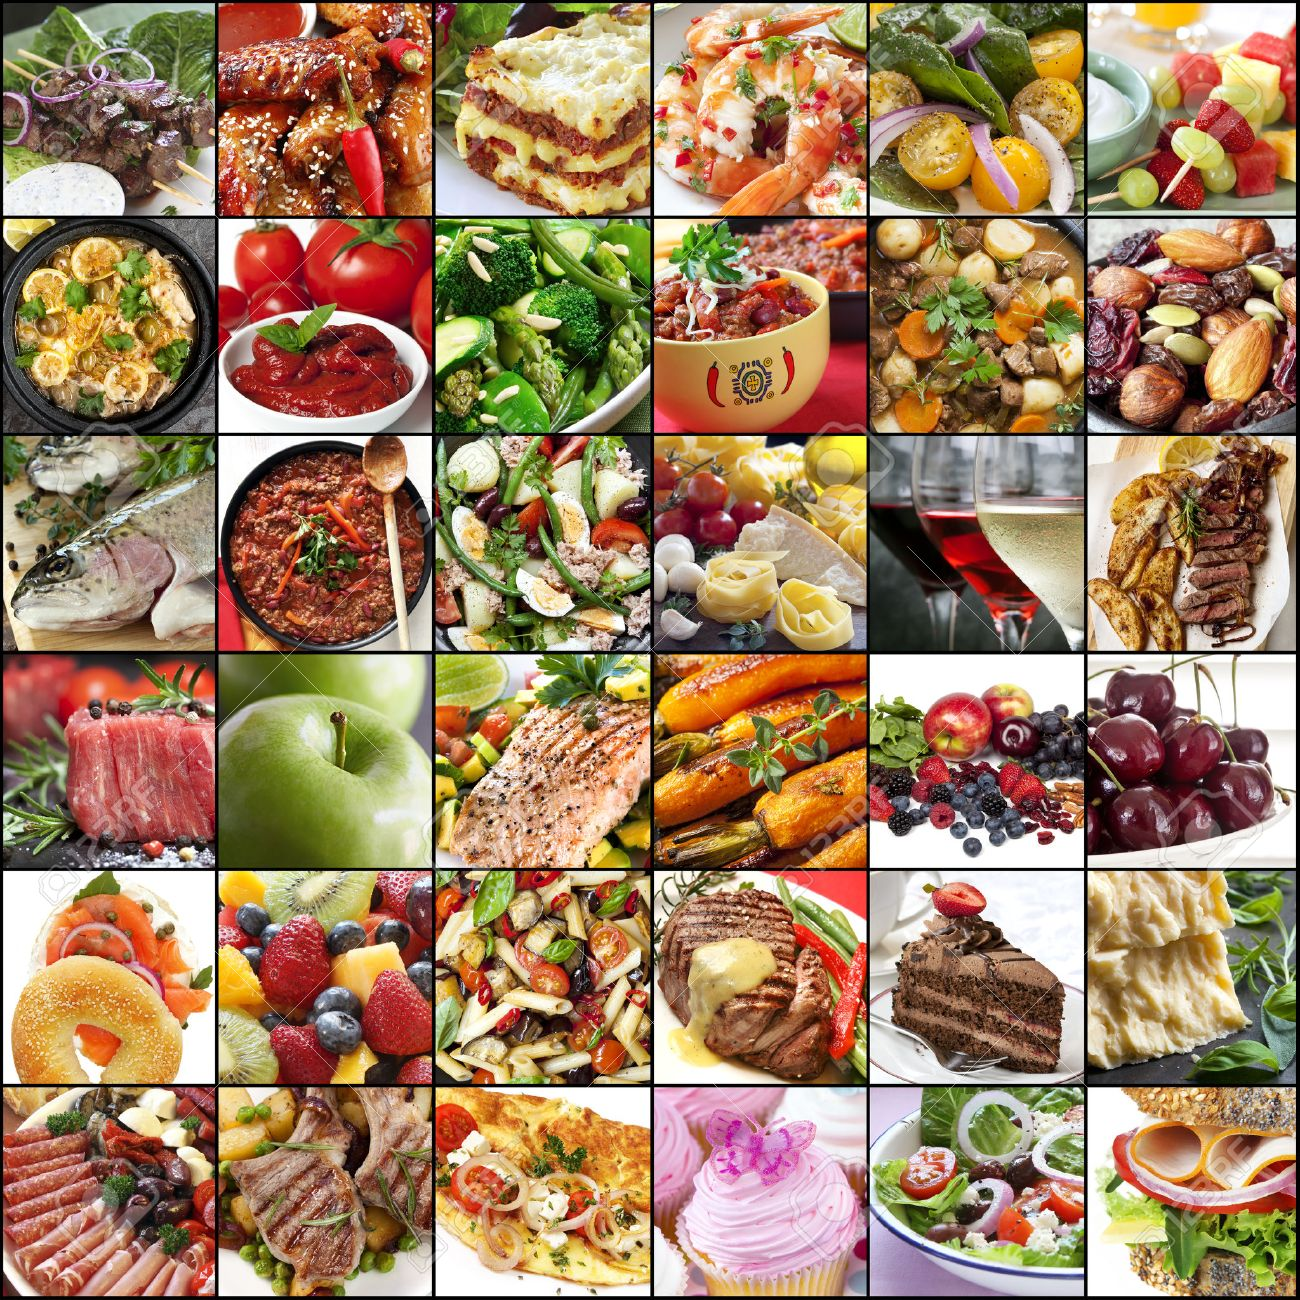 Big Collage Of Food Images Variety Of Meals Meat Fish Fruits